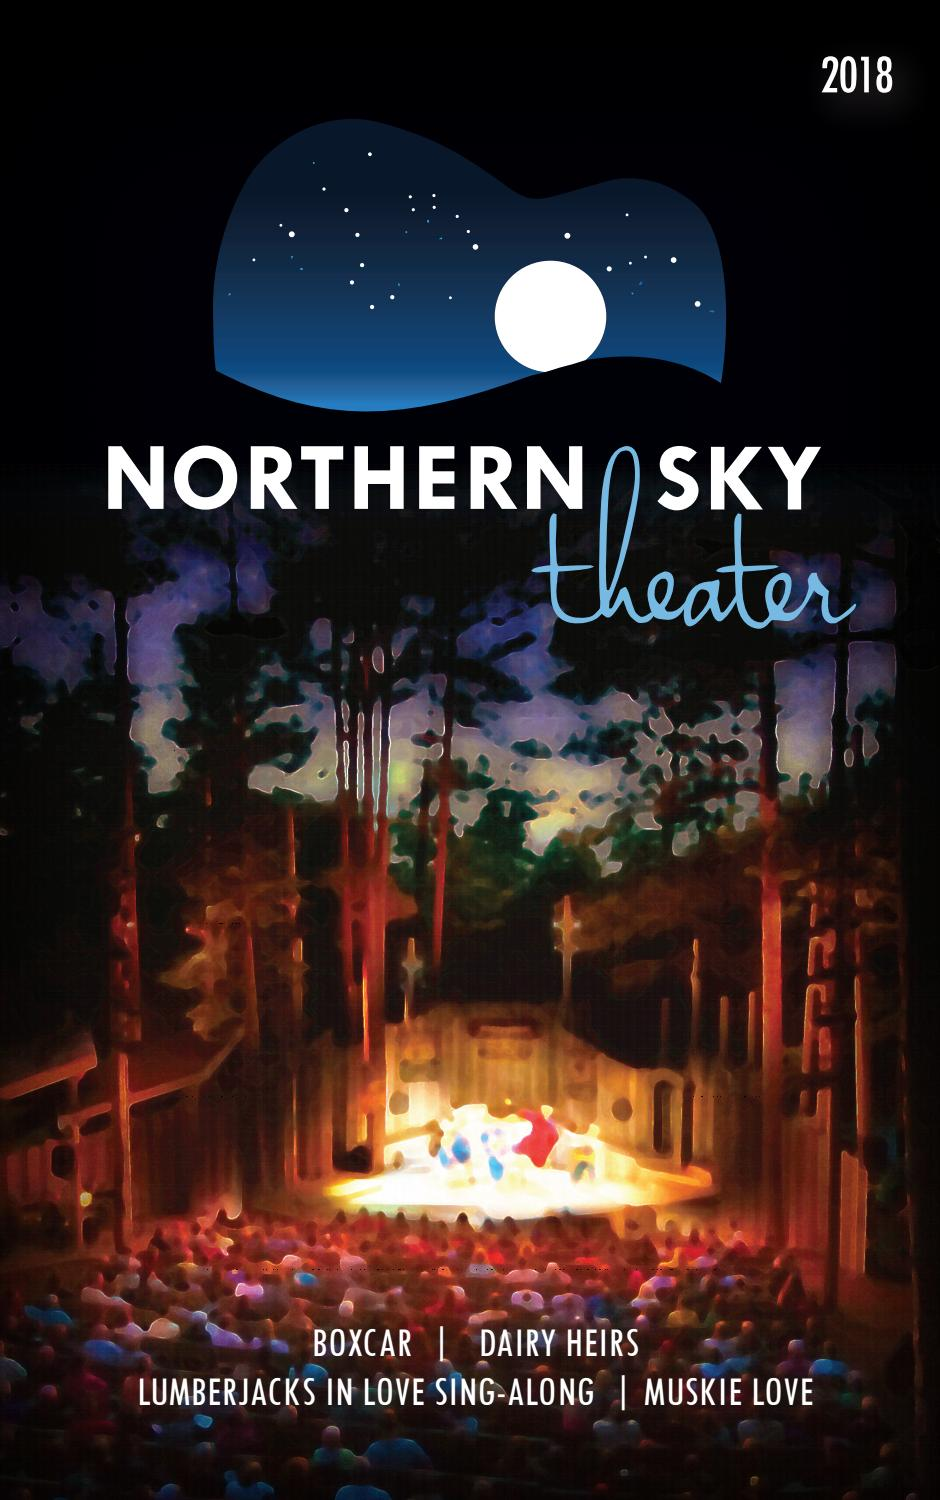 Northern Sky Theater Playbill 2018 by Northern Sky Theater